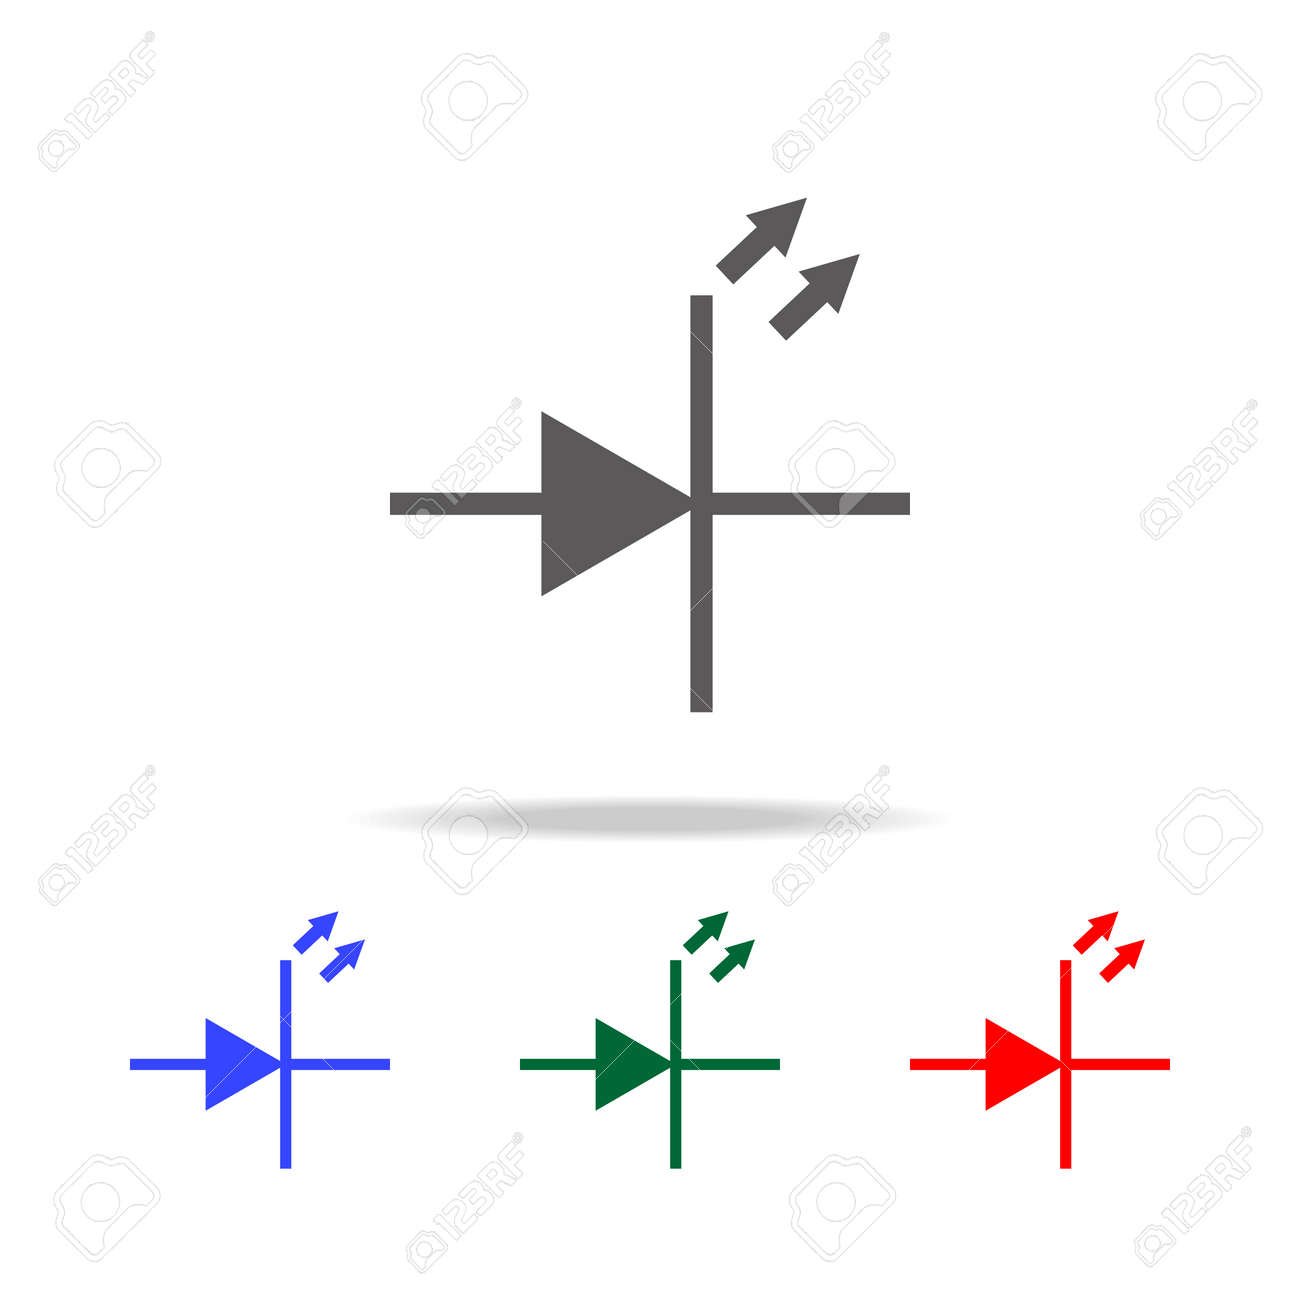 Electronic Circuit Symbol Icon Elements In Multi Colored Icons Design Program Free For Mobile Concept And Web Apps